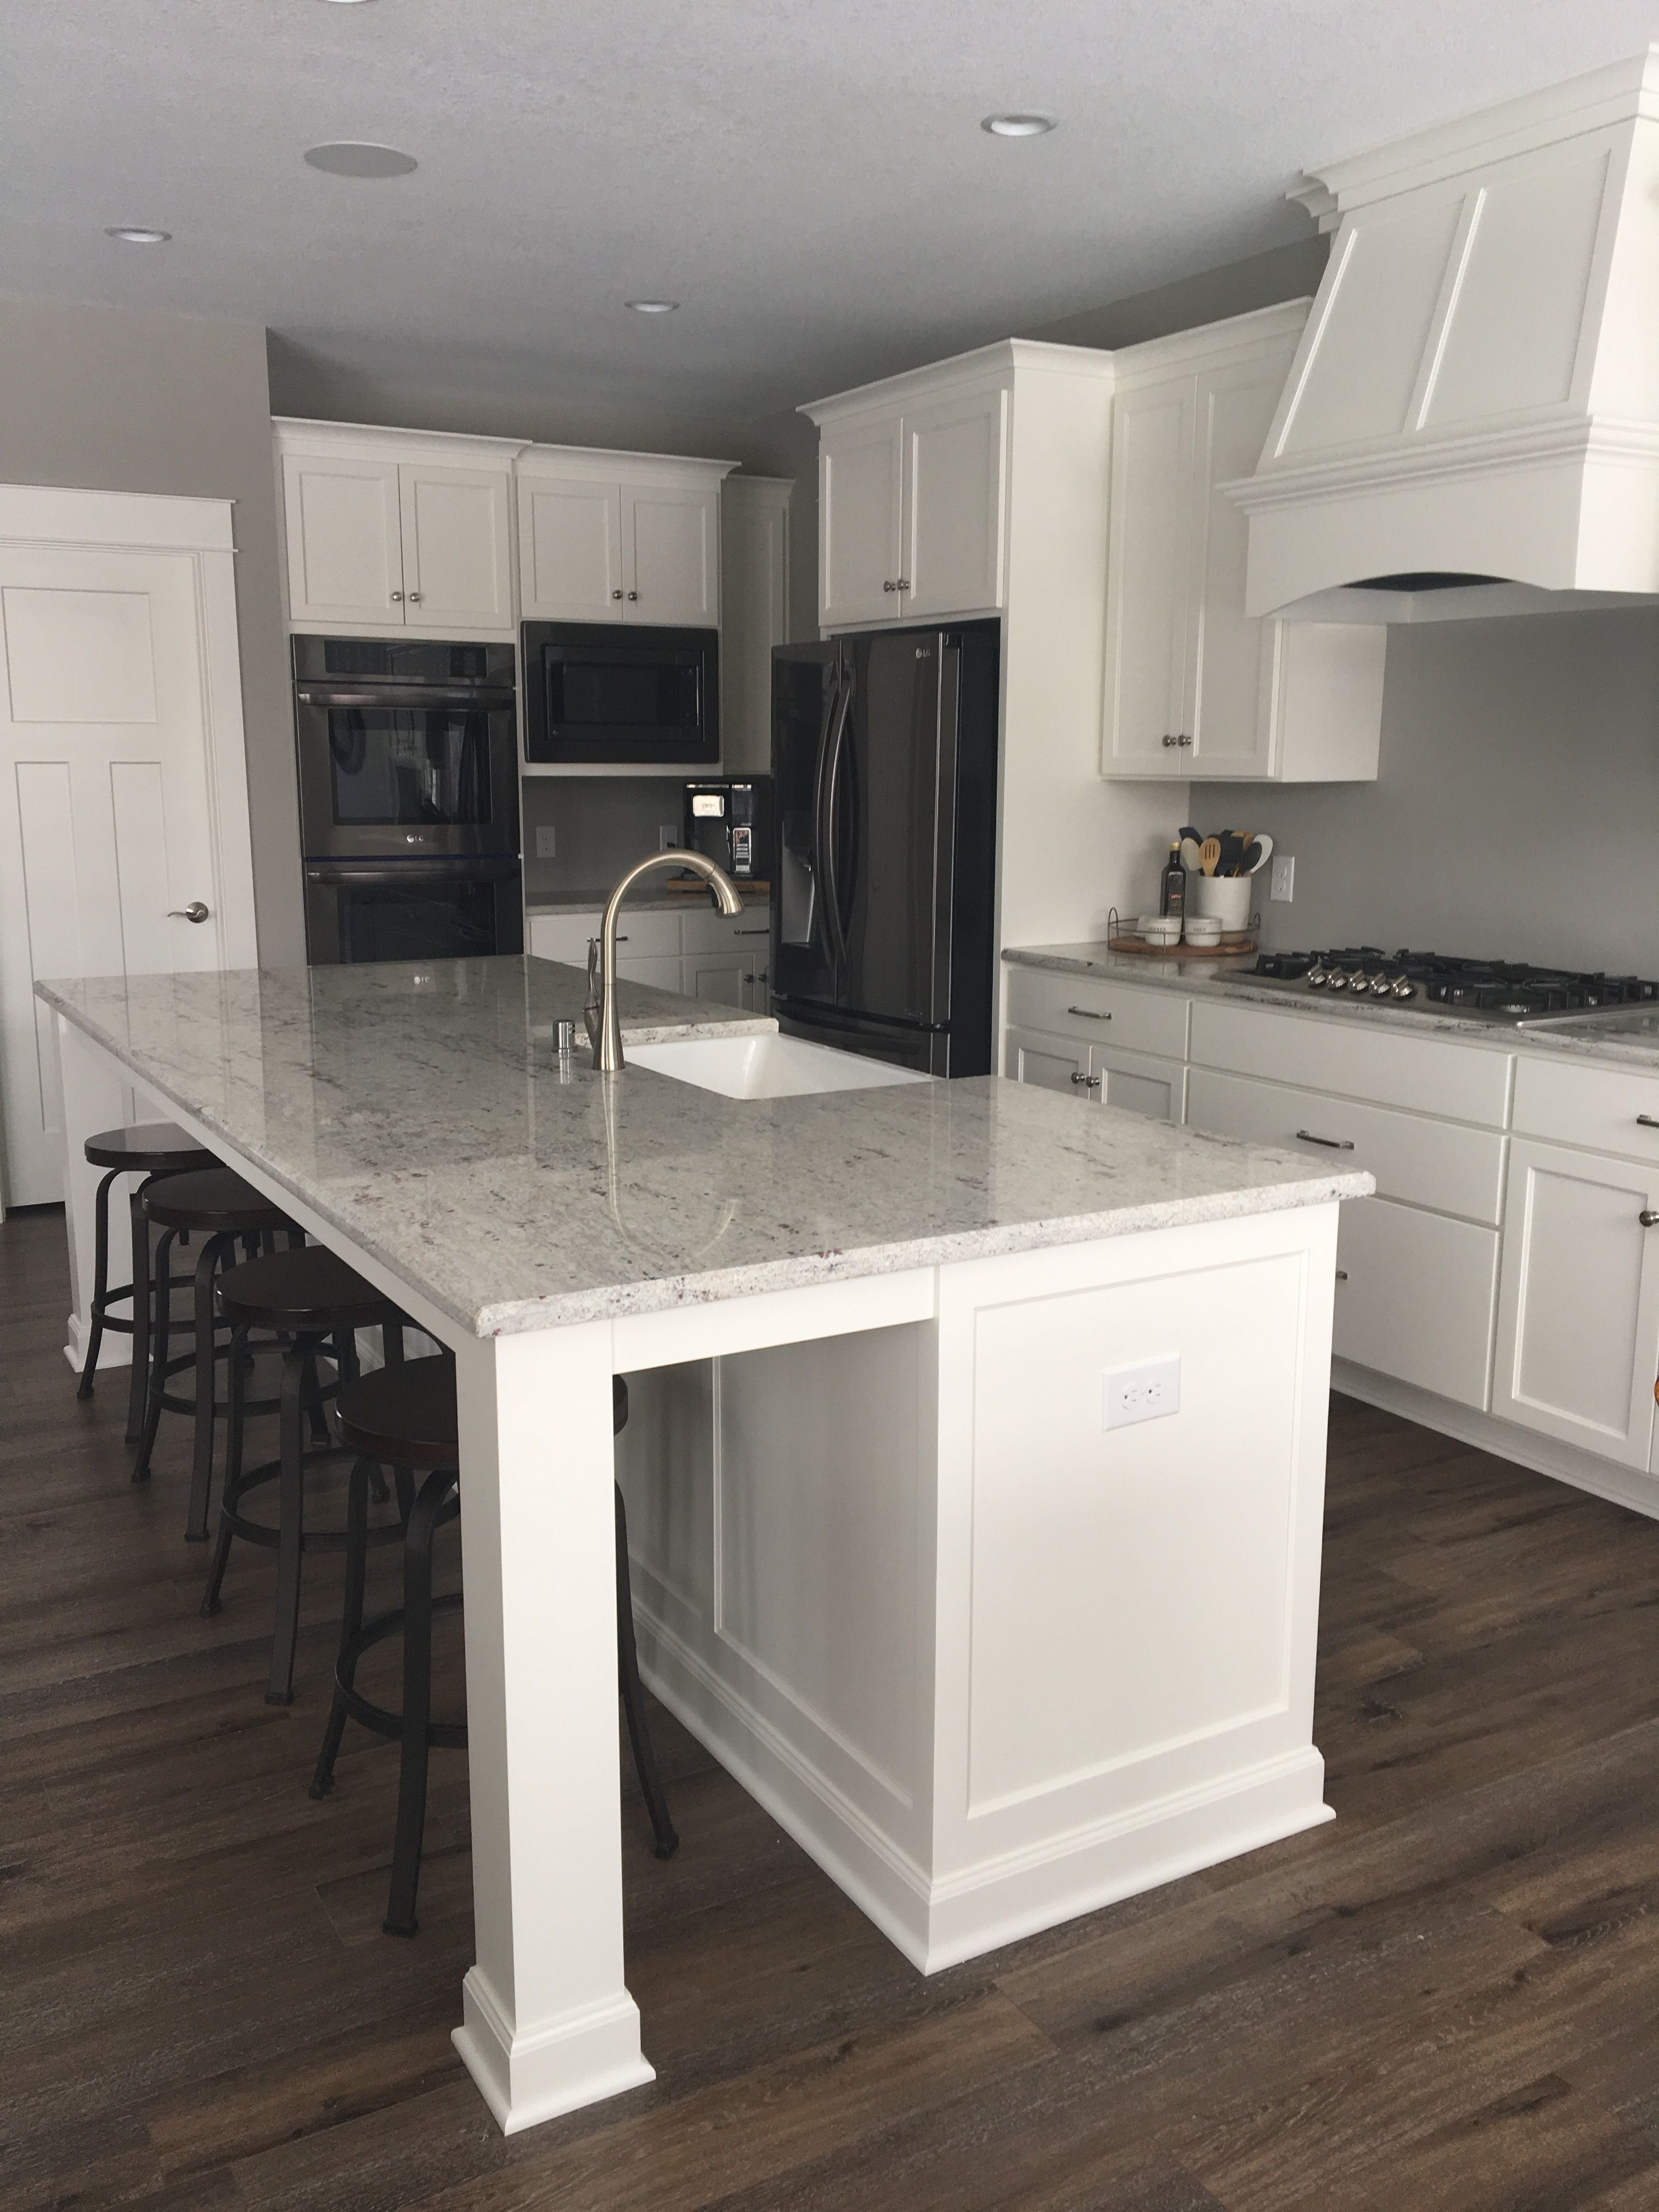 This White Kitchen Is Classic Yet Modern And Features Crisp White Cabinetry White Kitchen Appliances Black Appliances Kitchen White Kitchen Black Appliances